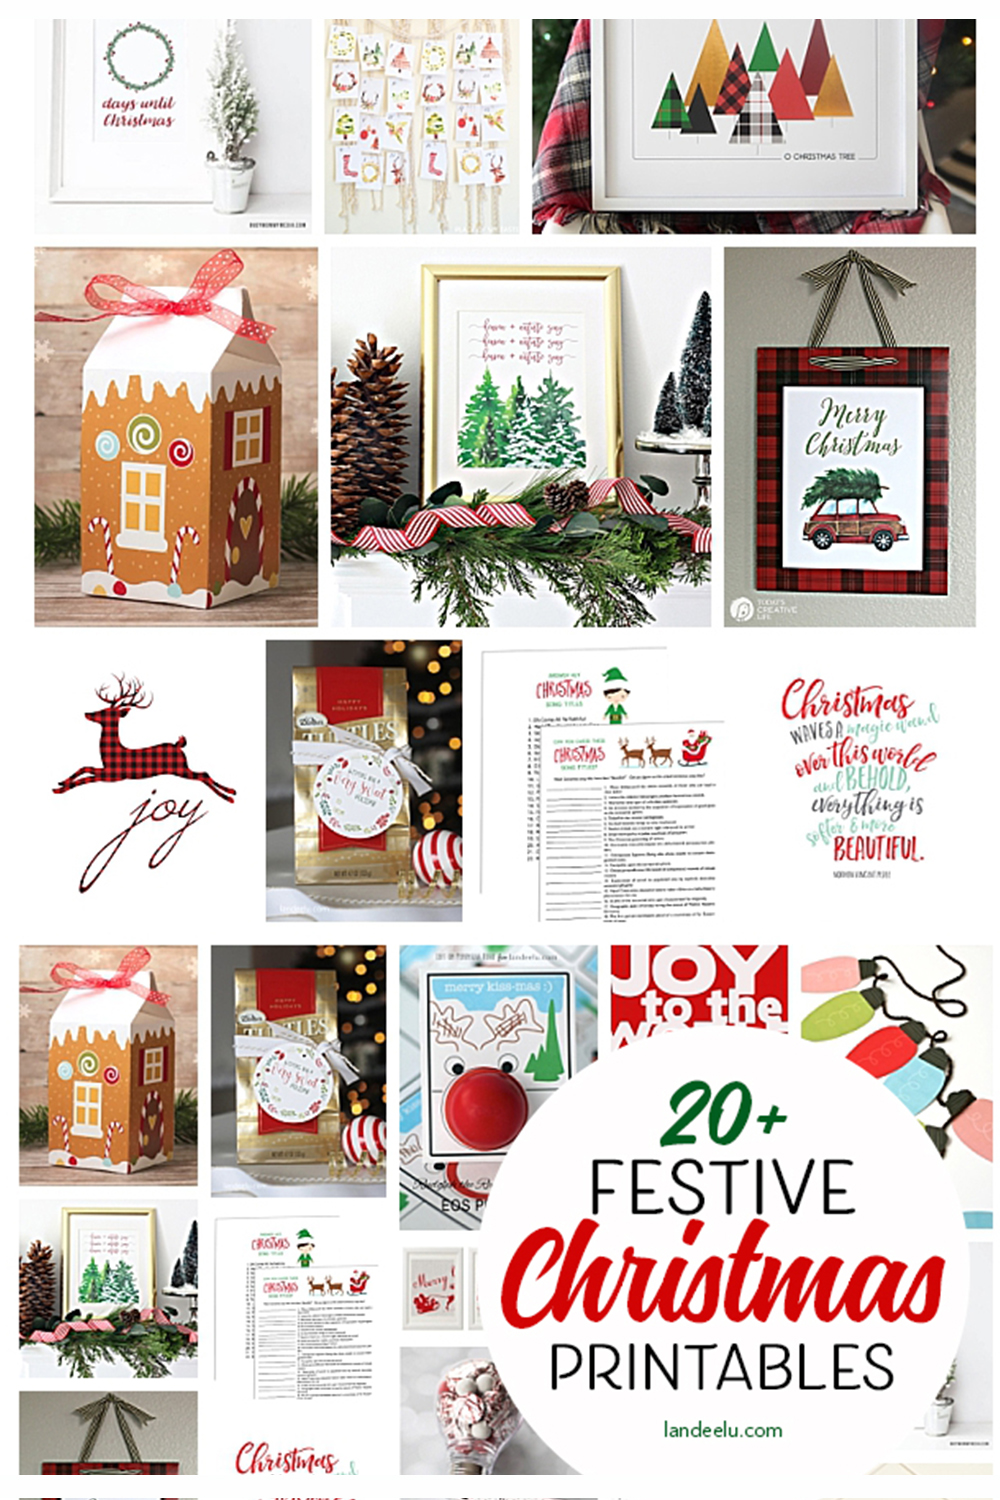 Make the holidays easier on yourself and download some awesome free Christmas printables! #christmasprintables #christmasdecor #easychristmasdecor #holidayprintables